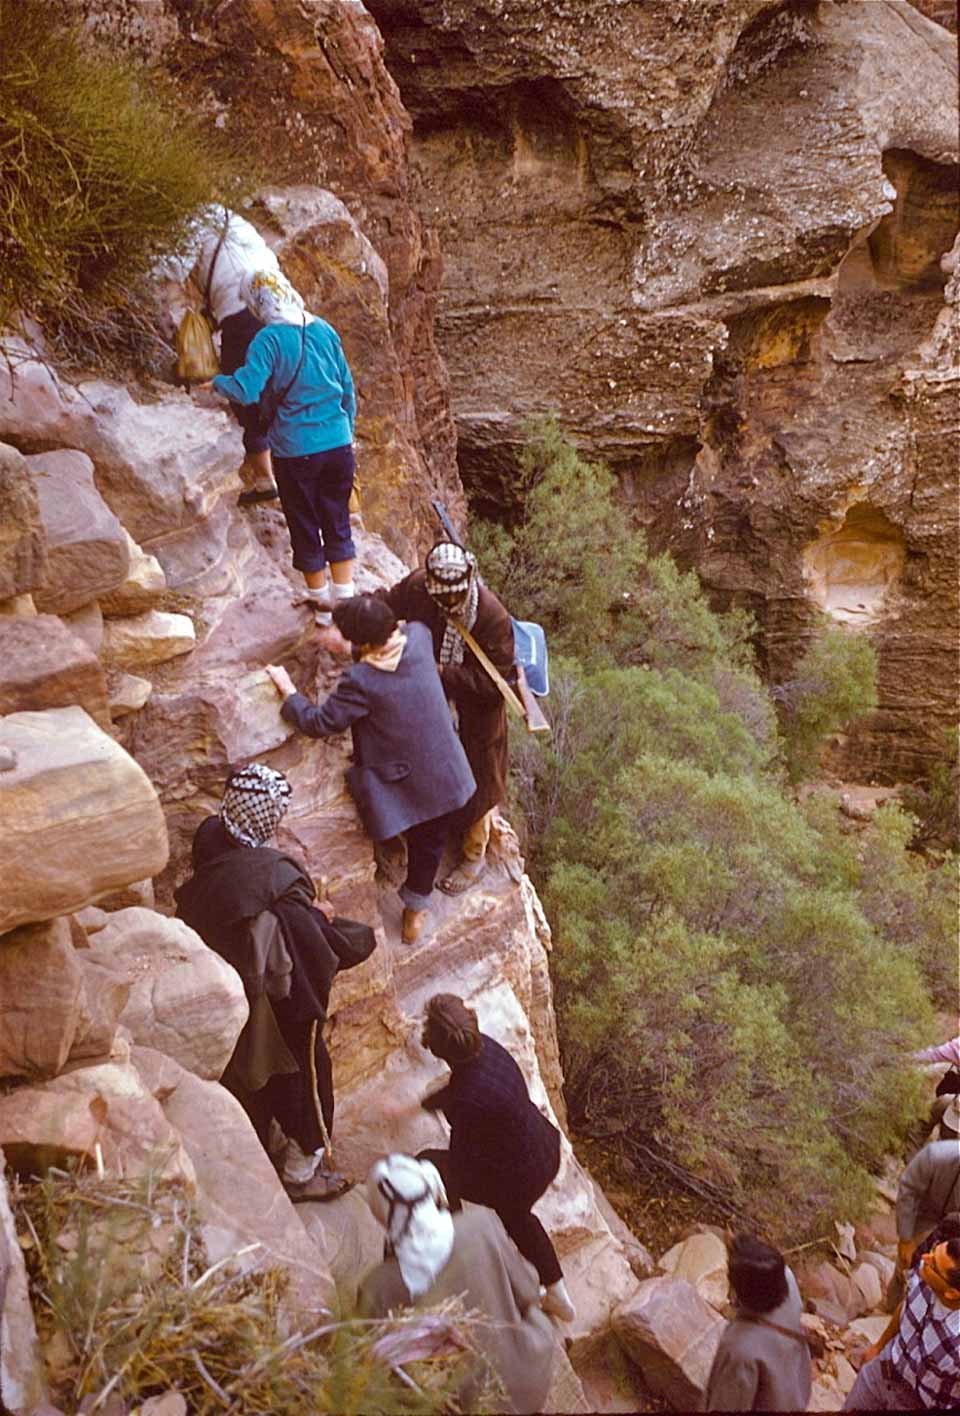 Climbing to reach the Ad-Deir